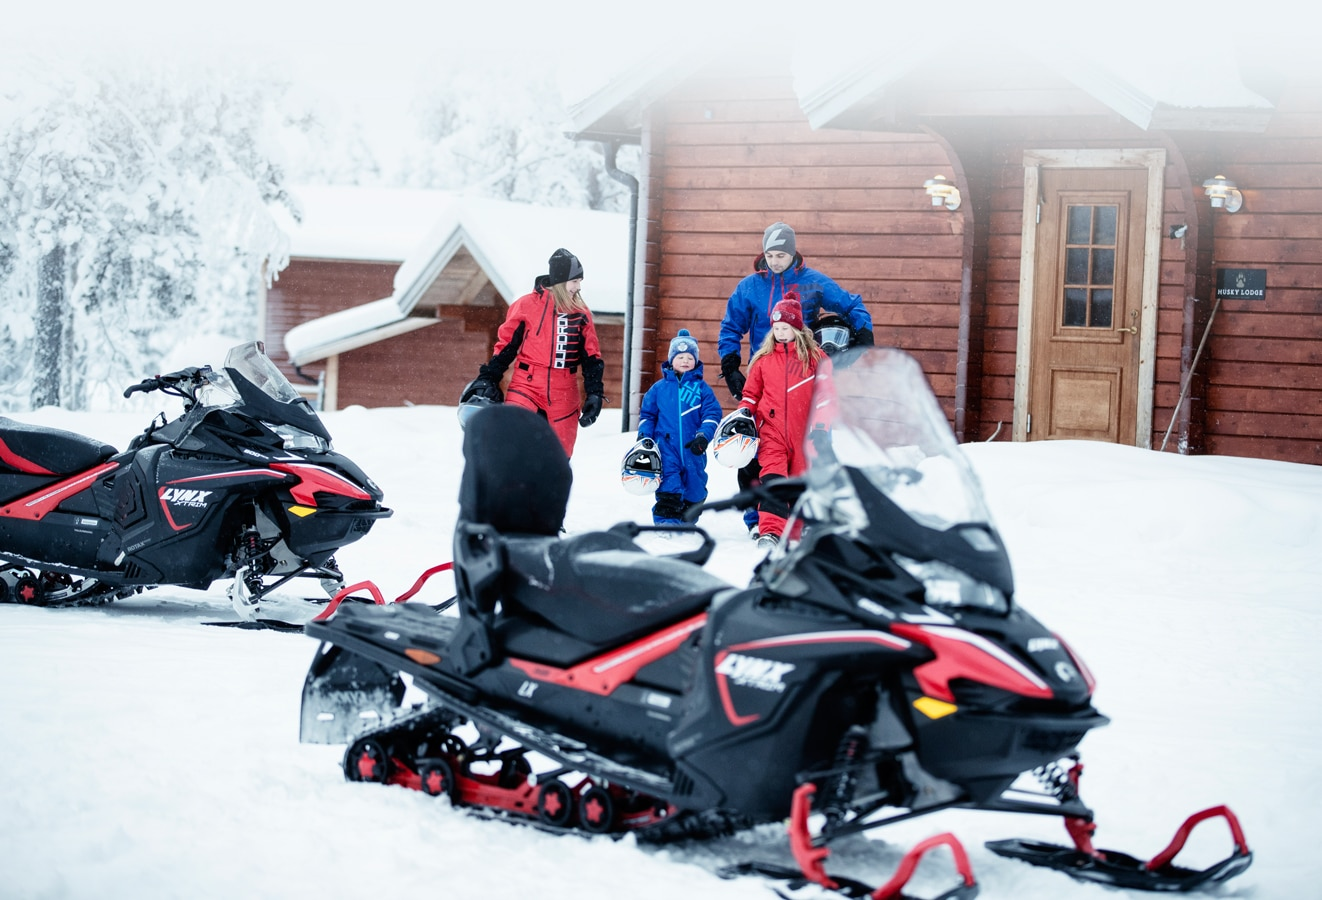 A family of 4 people are heading towards their 2 Lynx Xtrim Model Snowmobile